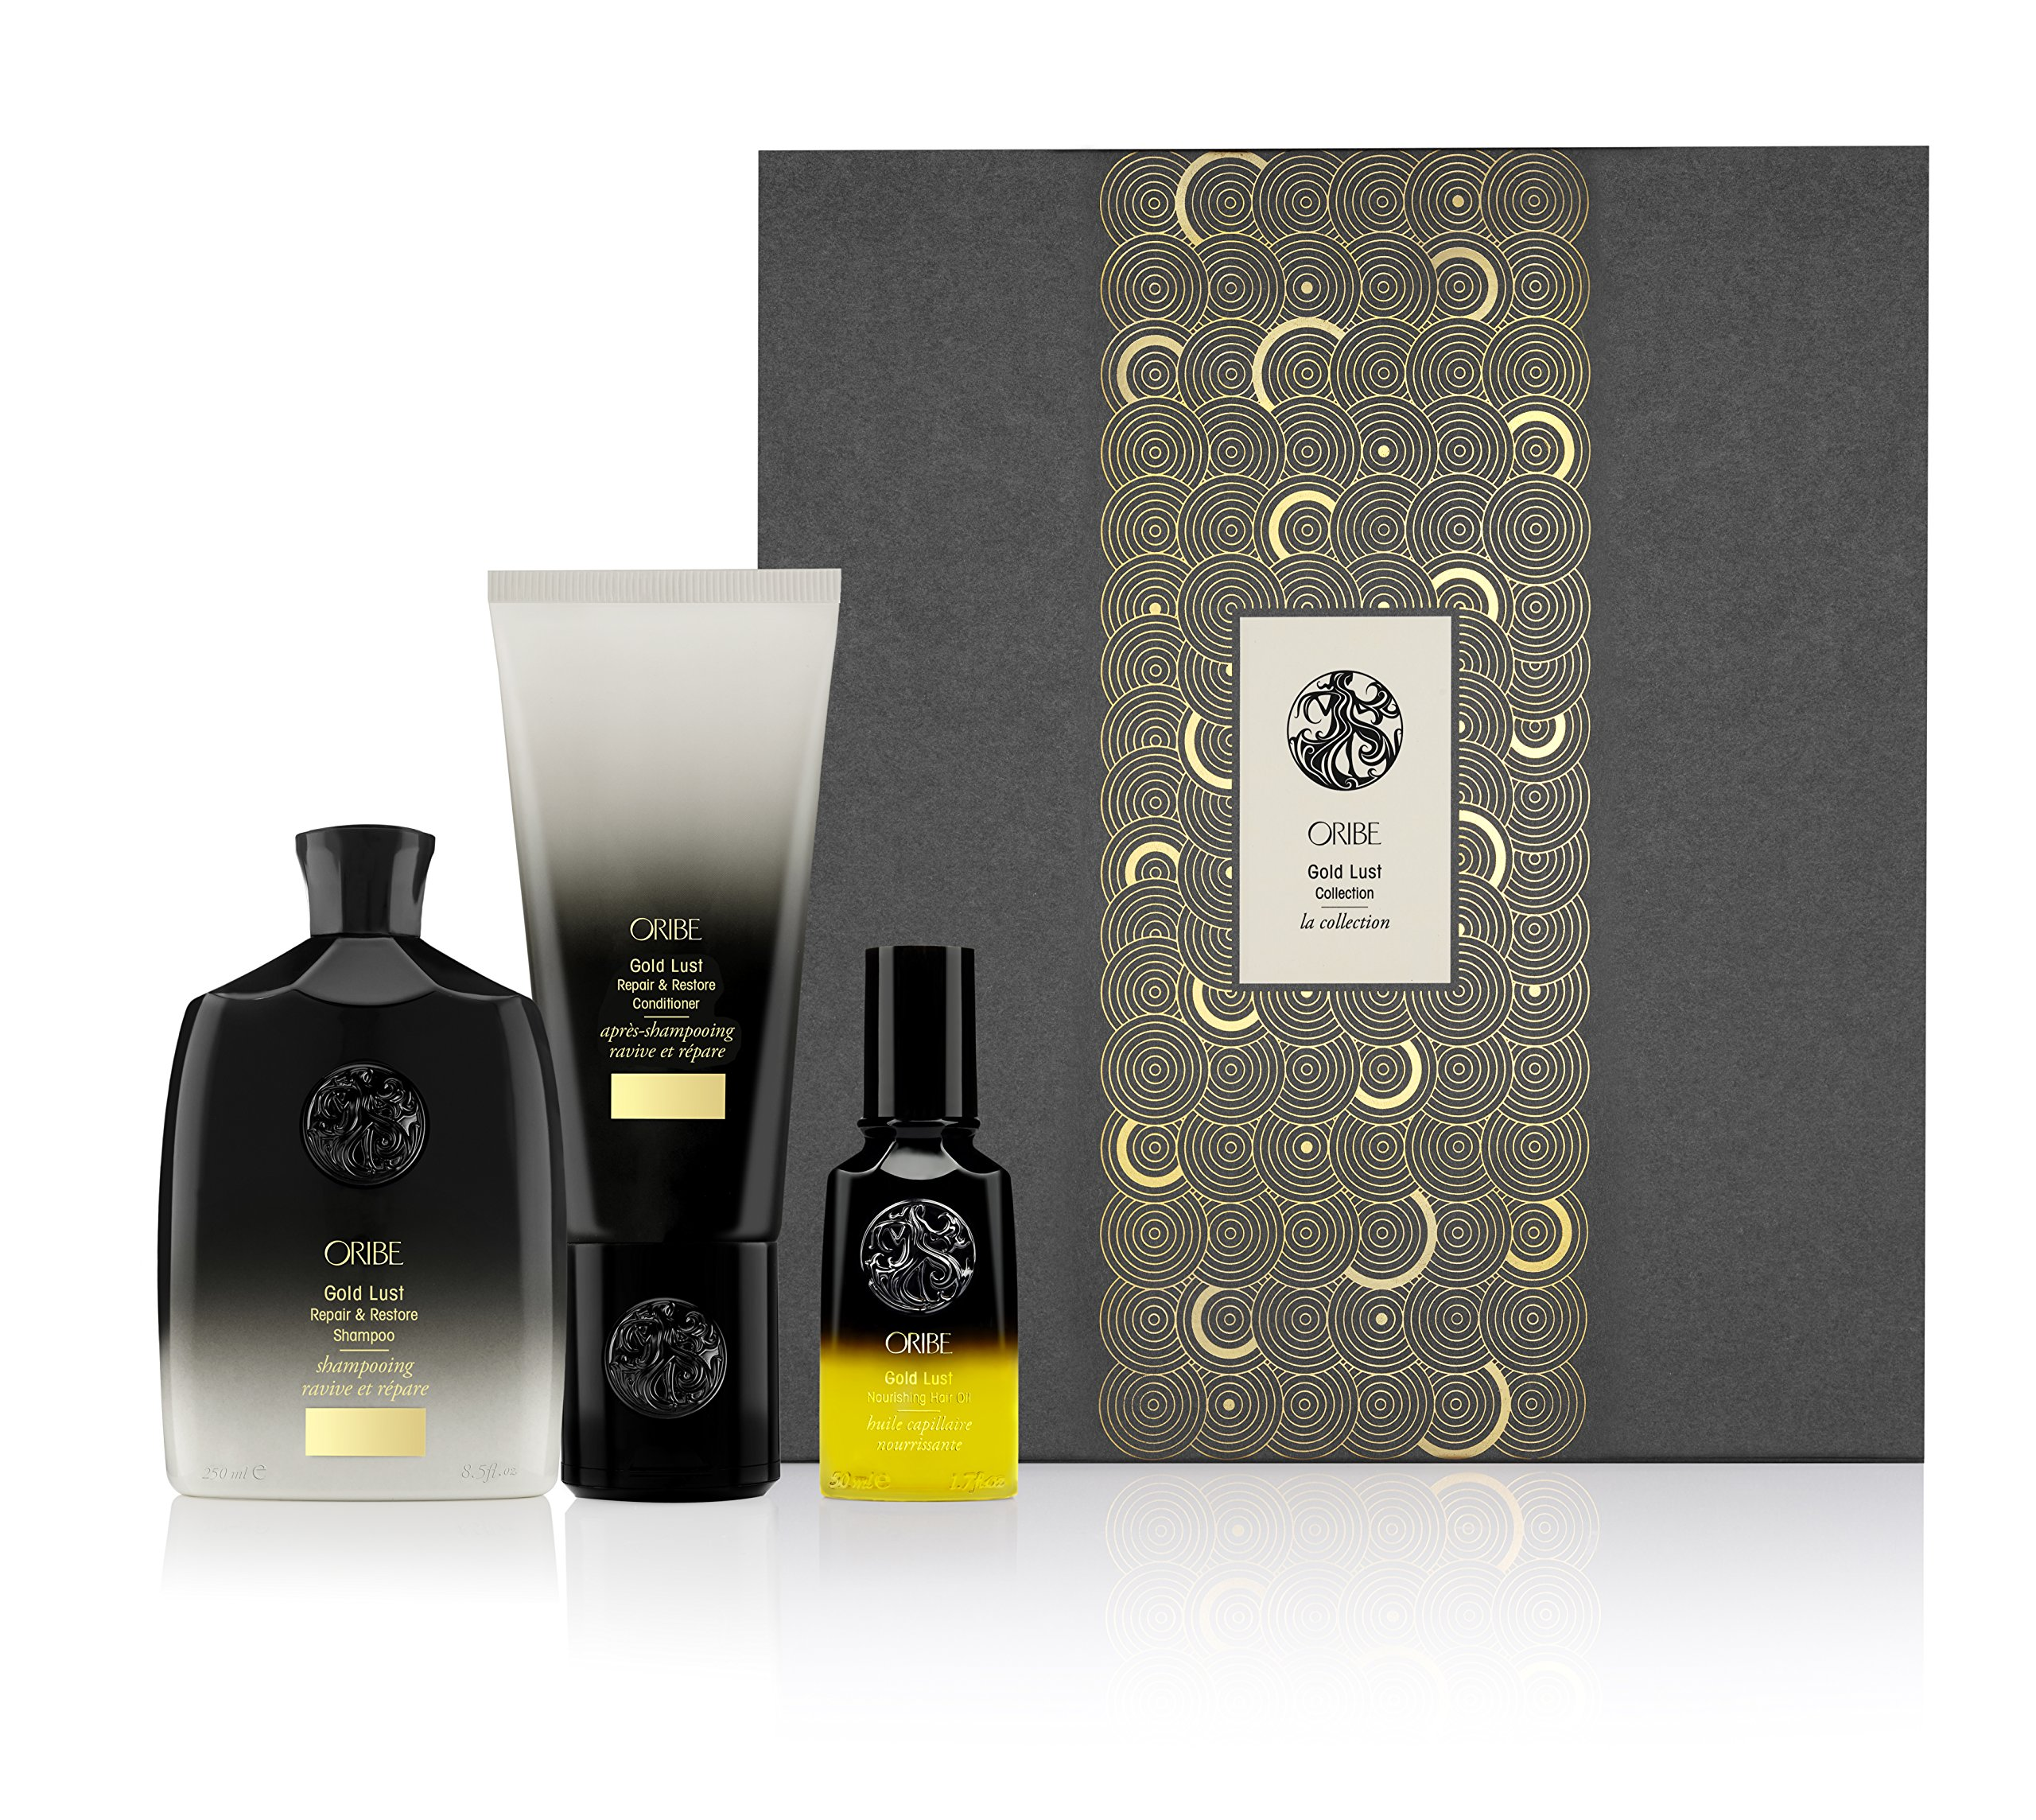 ORIBE Holiday Gold Lust Collection